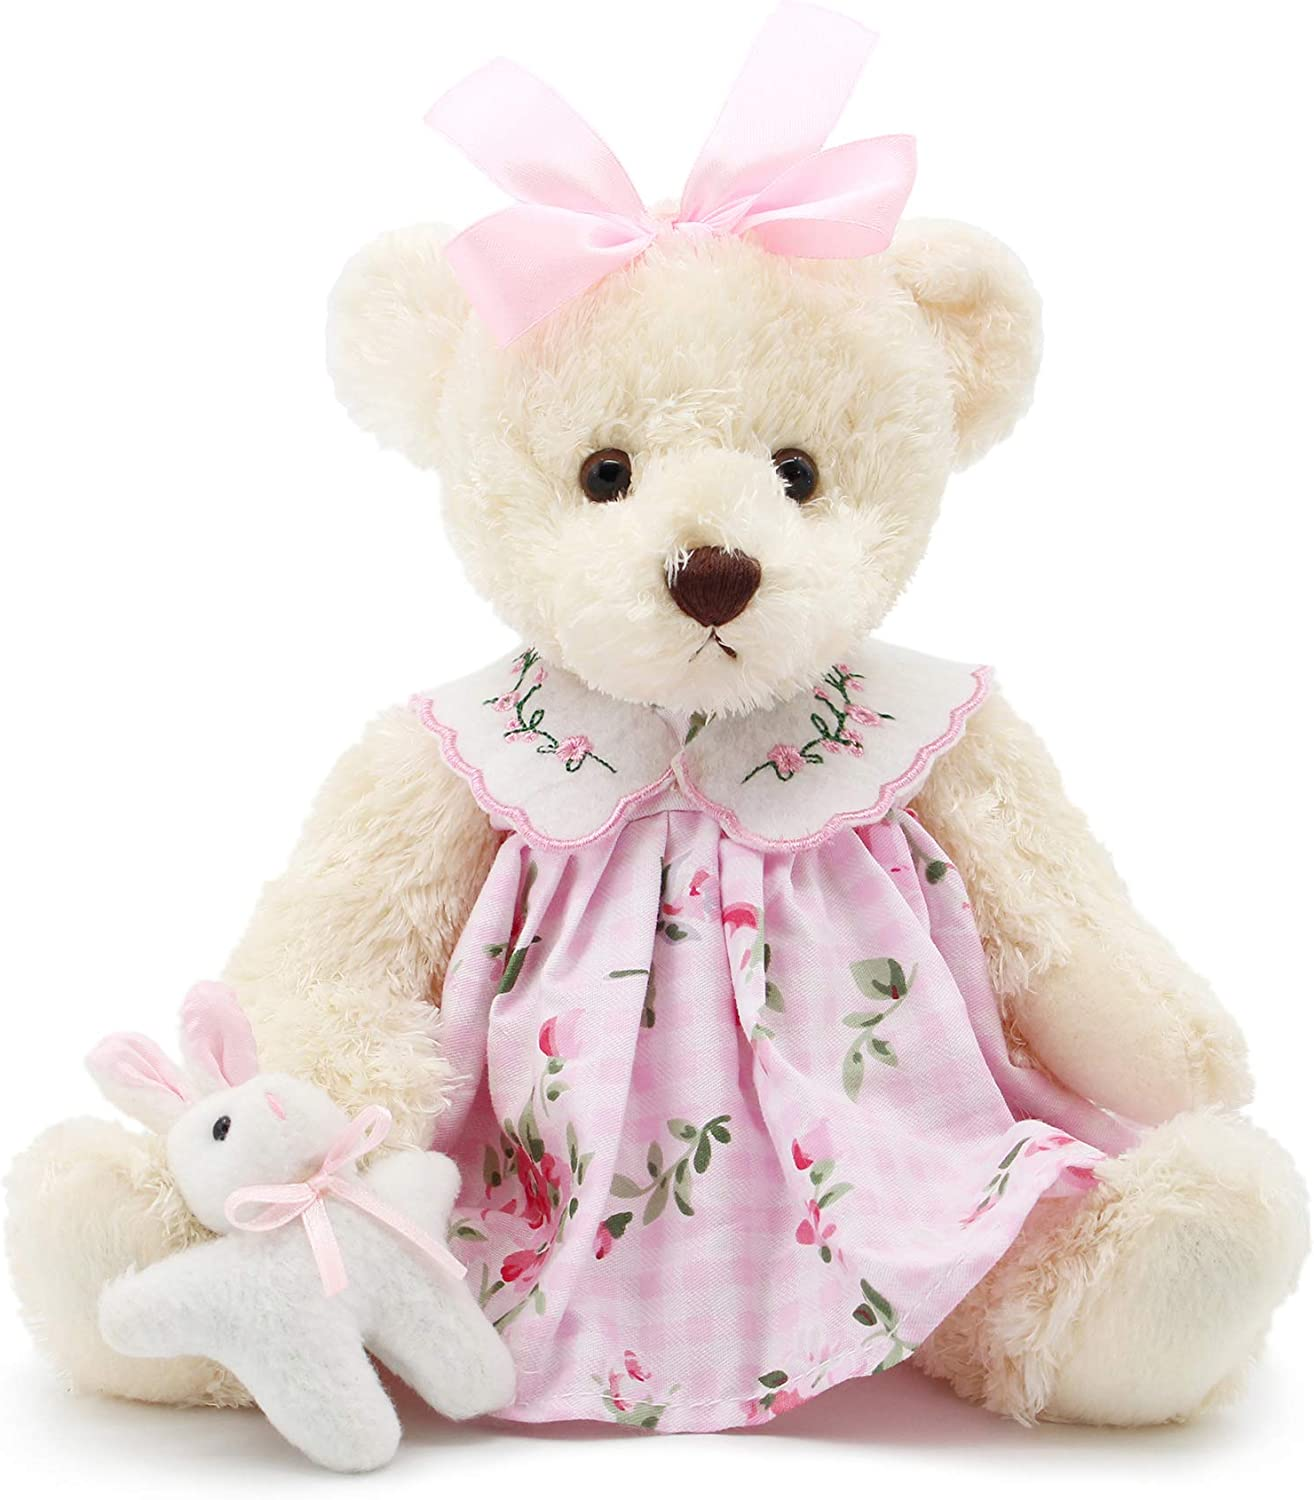 "Oitscute Small Baby Teddy Bear with Cloth Cute Stuffed Animal Soft Plush Toy 10"" (Pink Dress with Rabbit): Toys & Games"